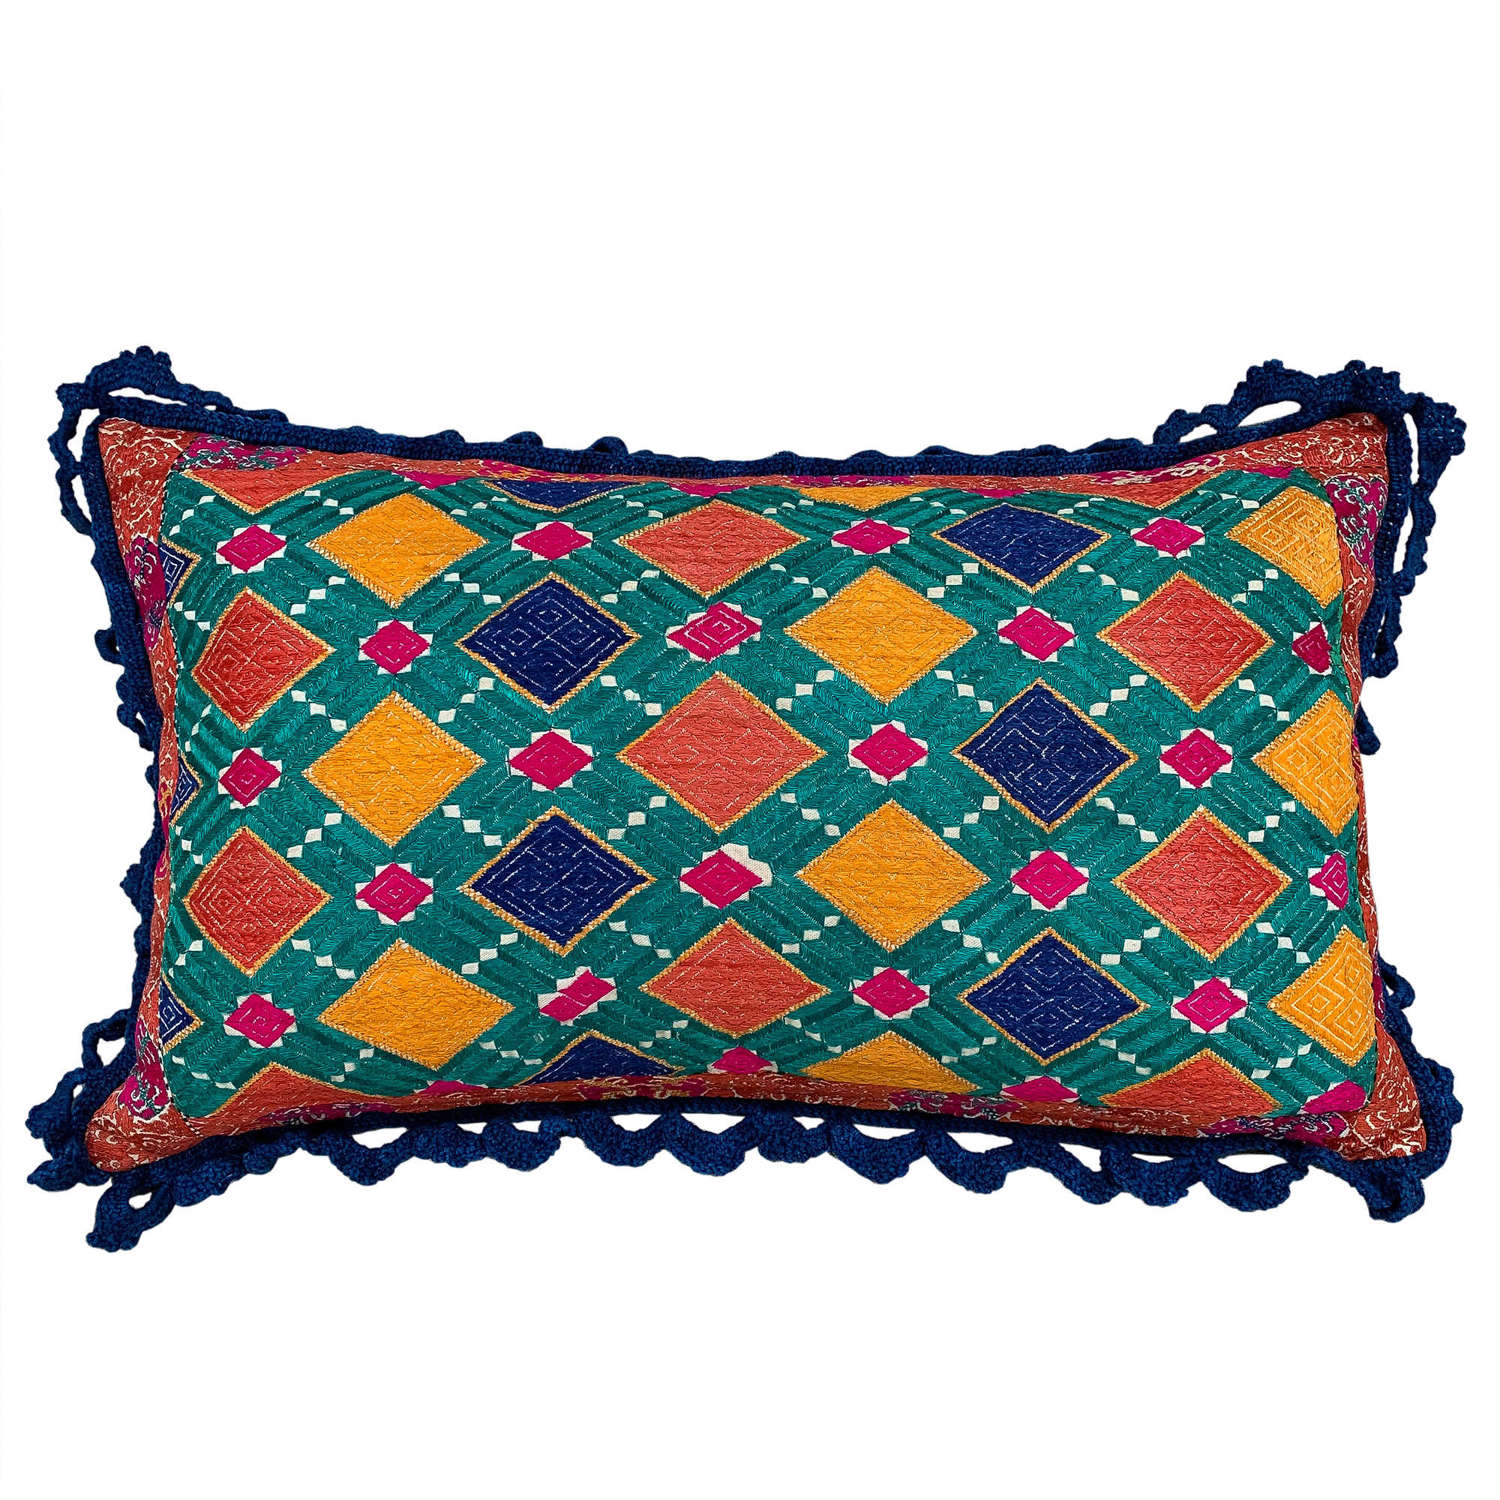 Swat cushion with crochet trim